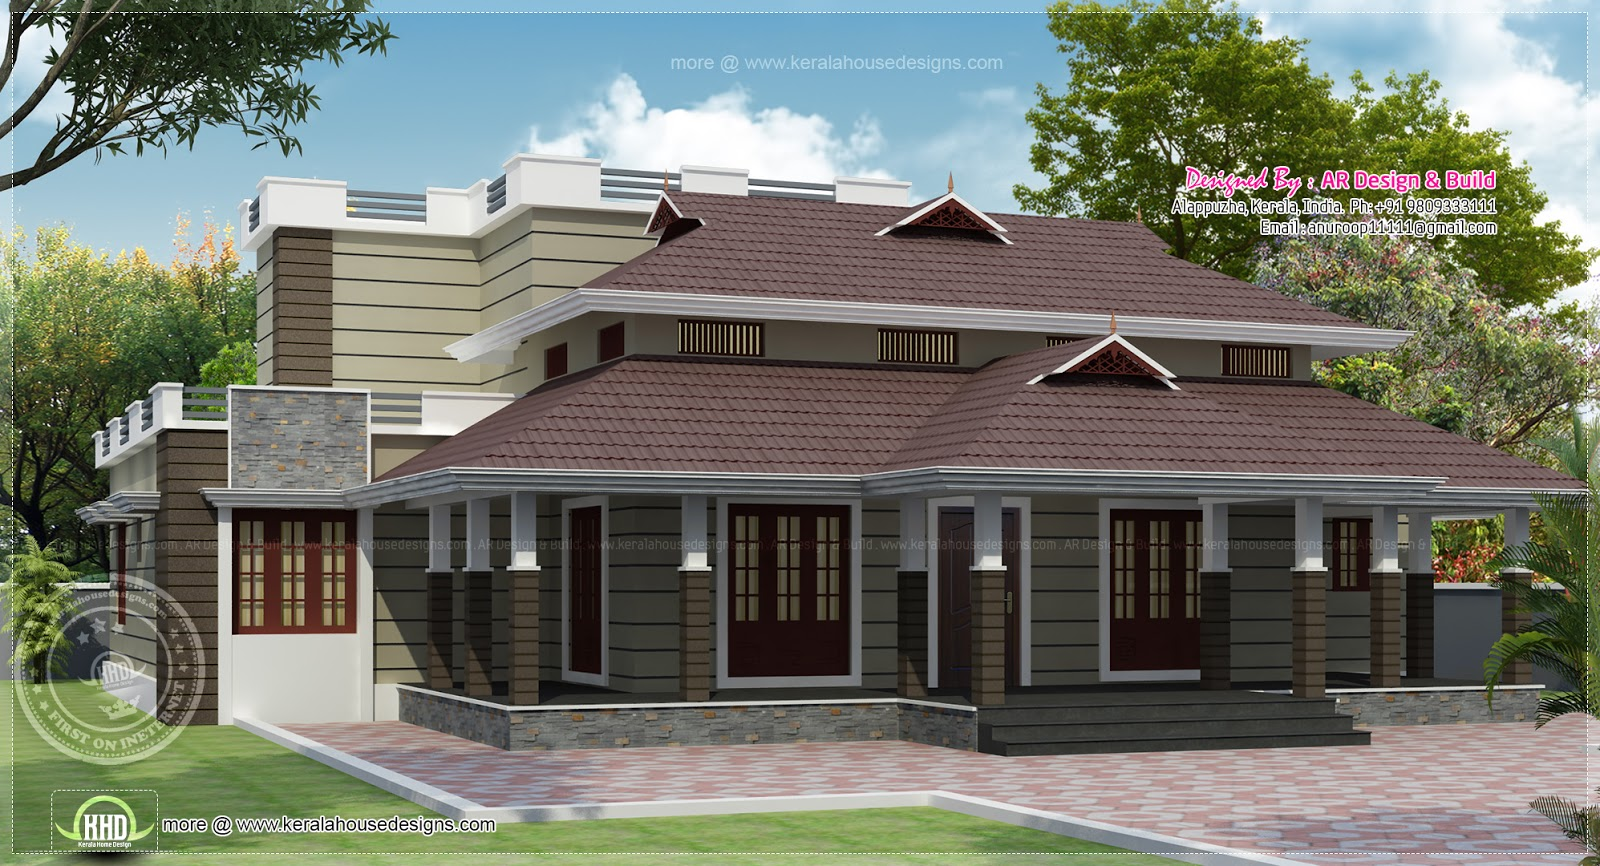 Nalukettu Kerala house in 2730 sq-ft - Kerala home design ... on 2 story house design, colonial style home design, kerala house interior design,